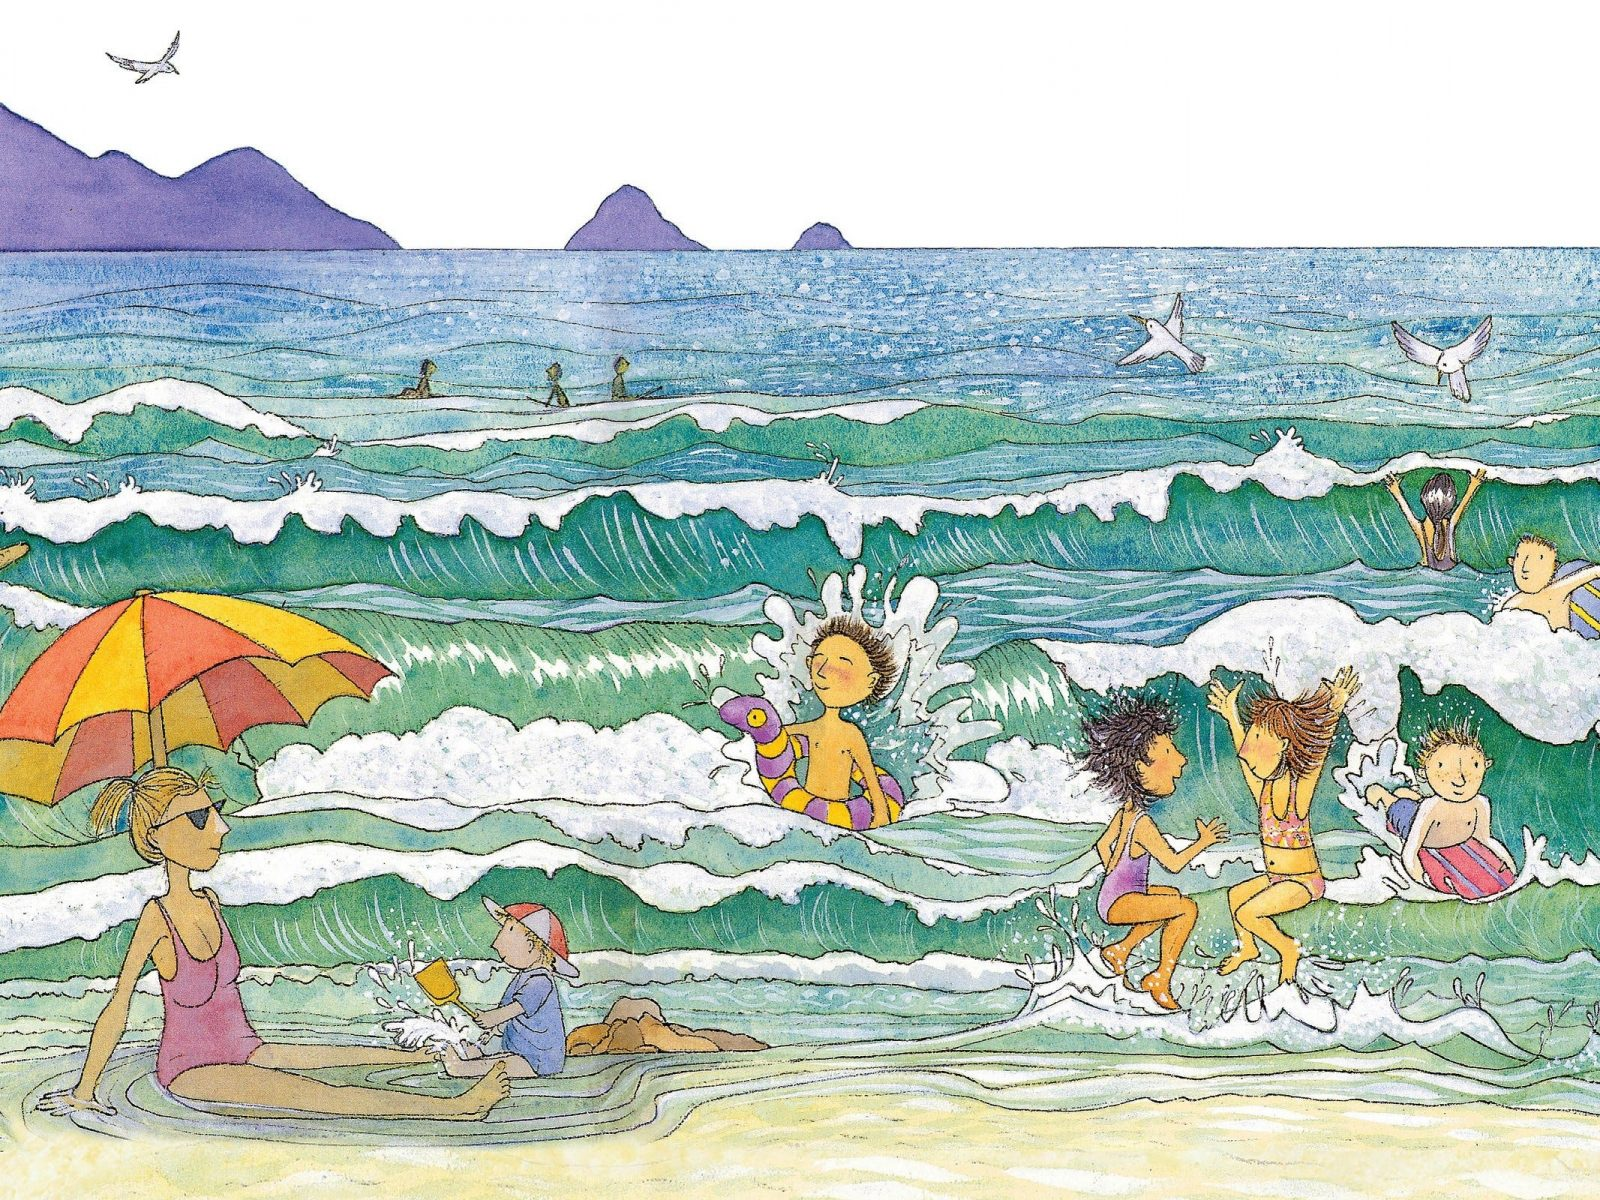 Children playing in the water at the beach